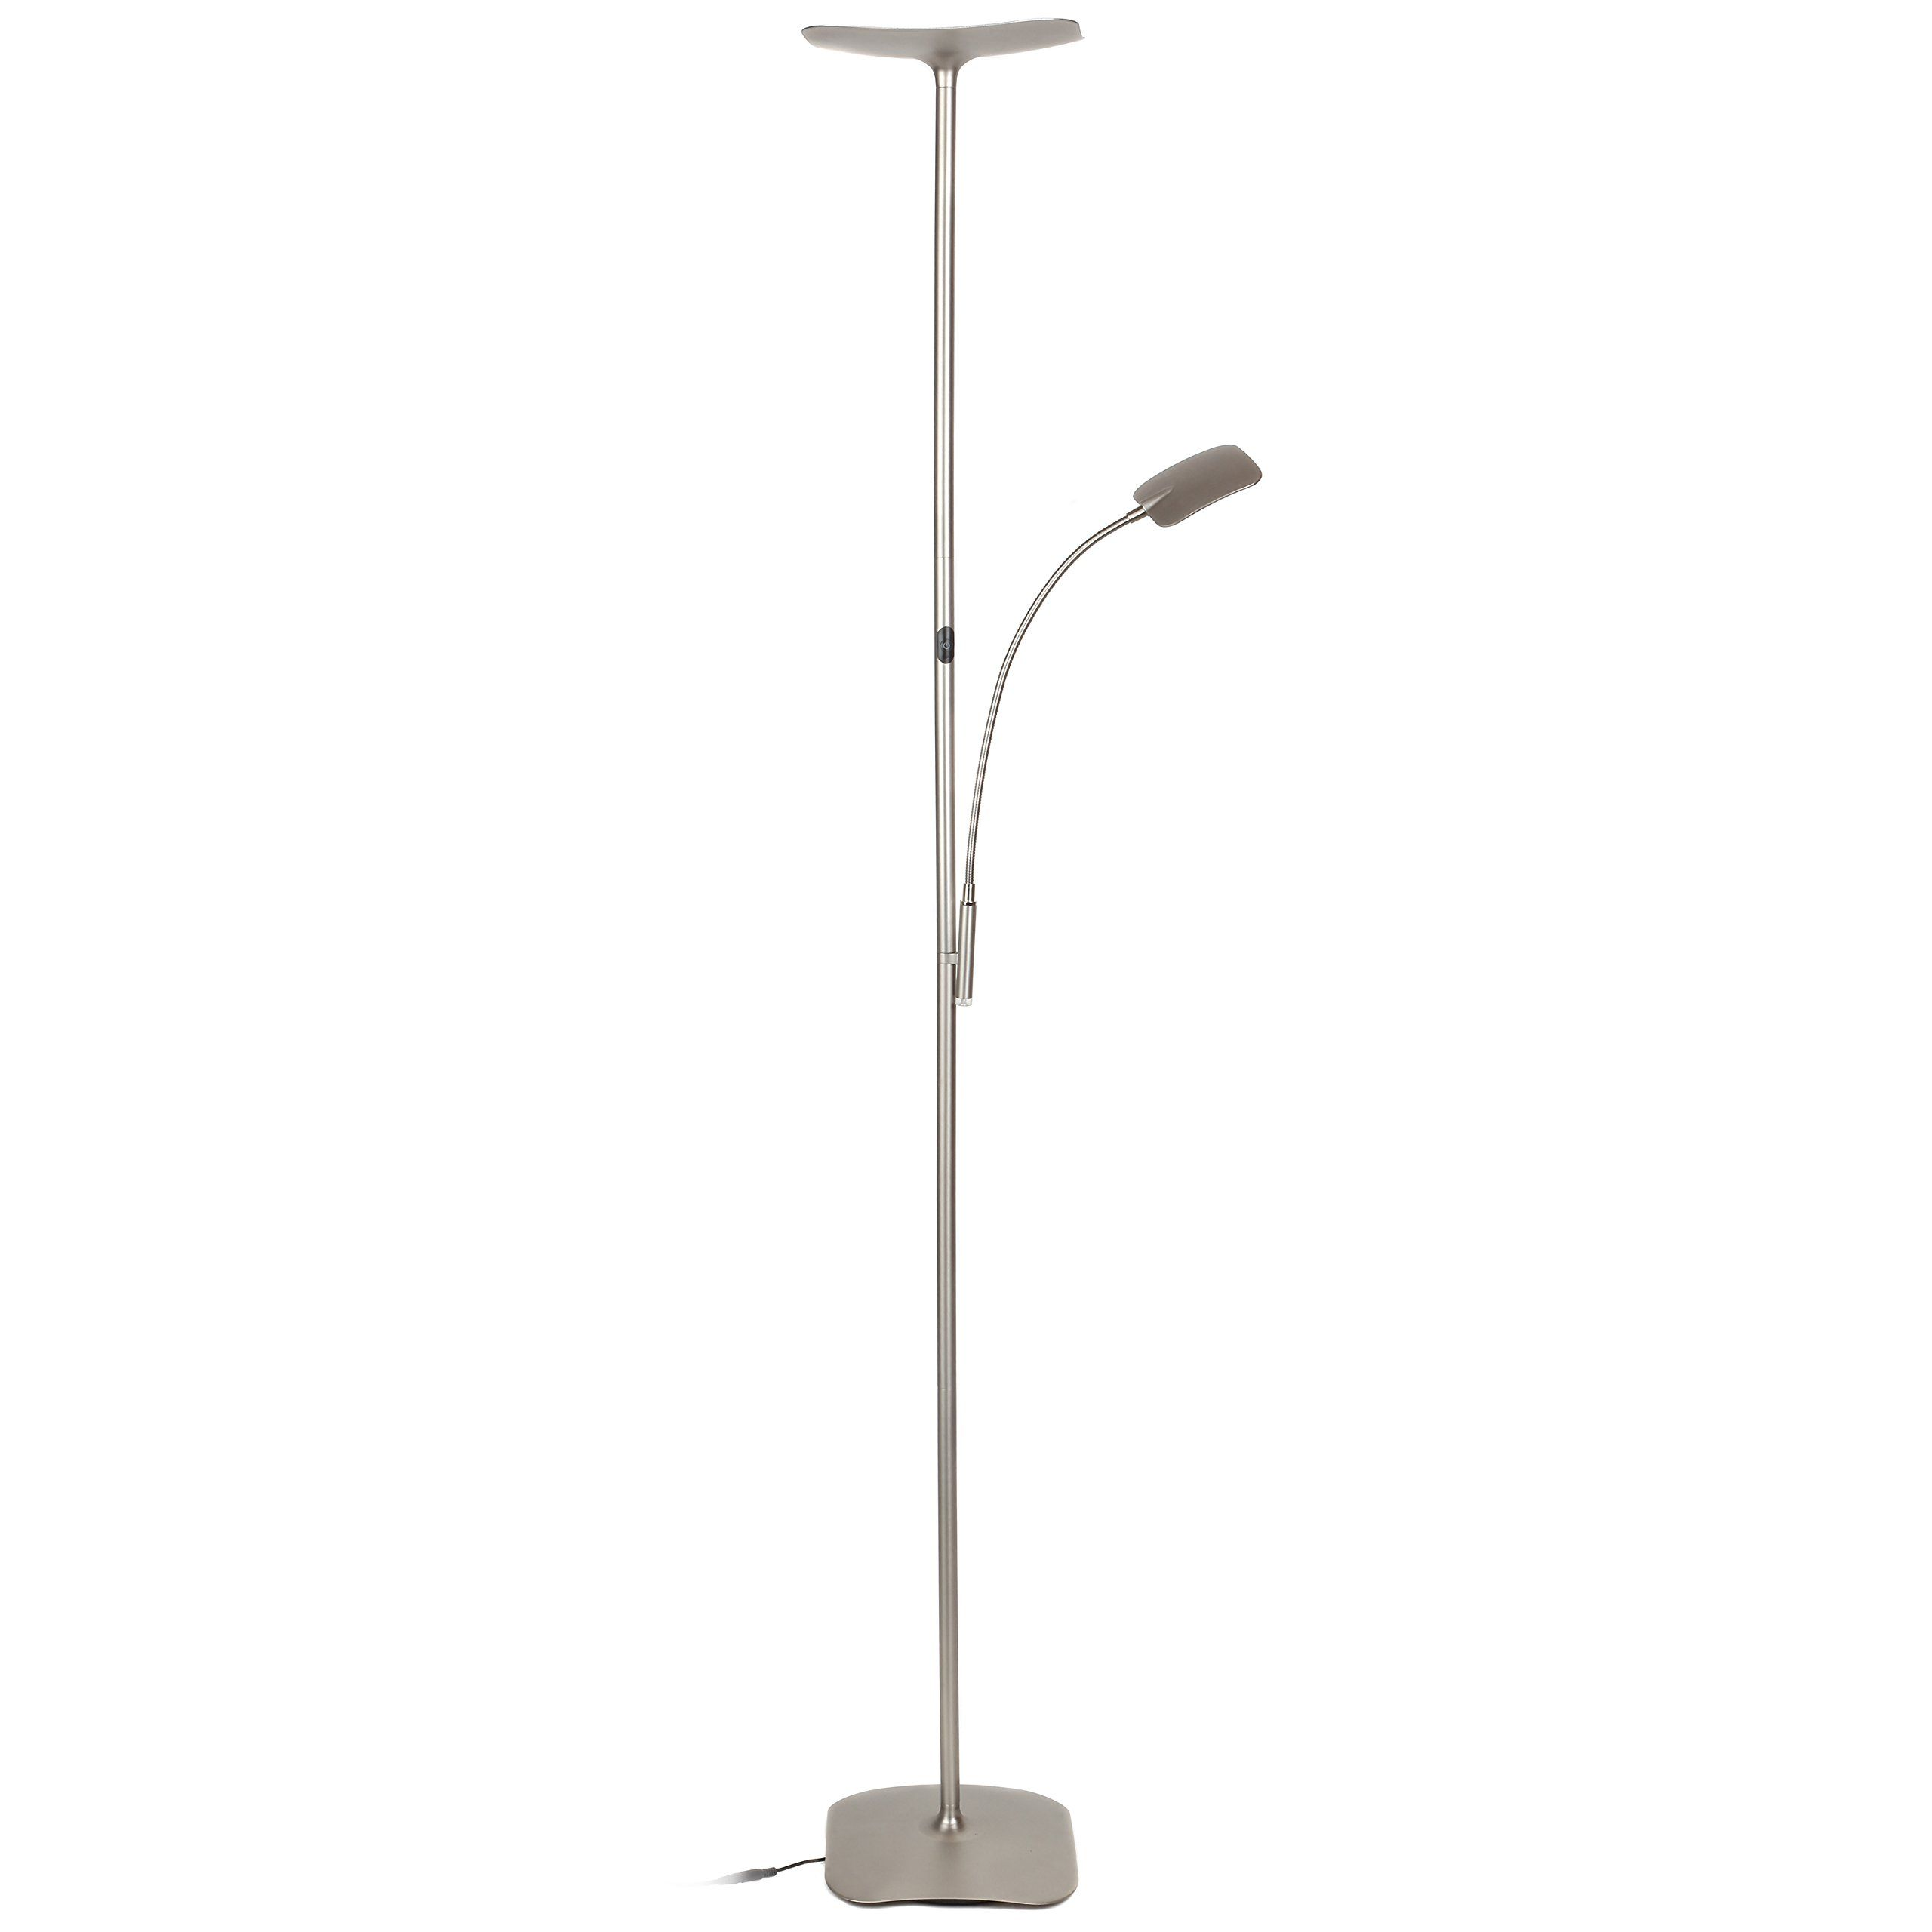 sculpta lamp dimmable floor ebay itm aluminum inch led